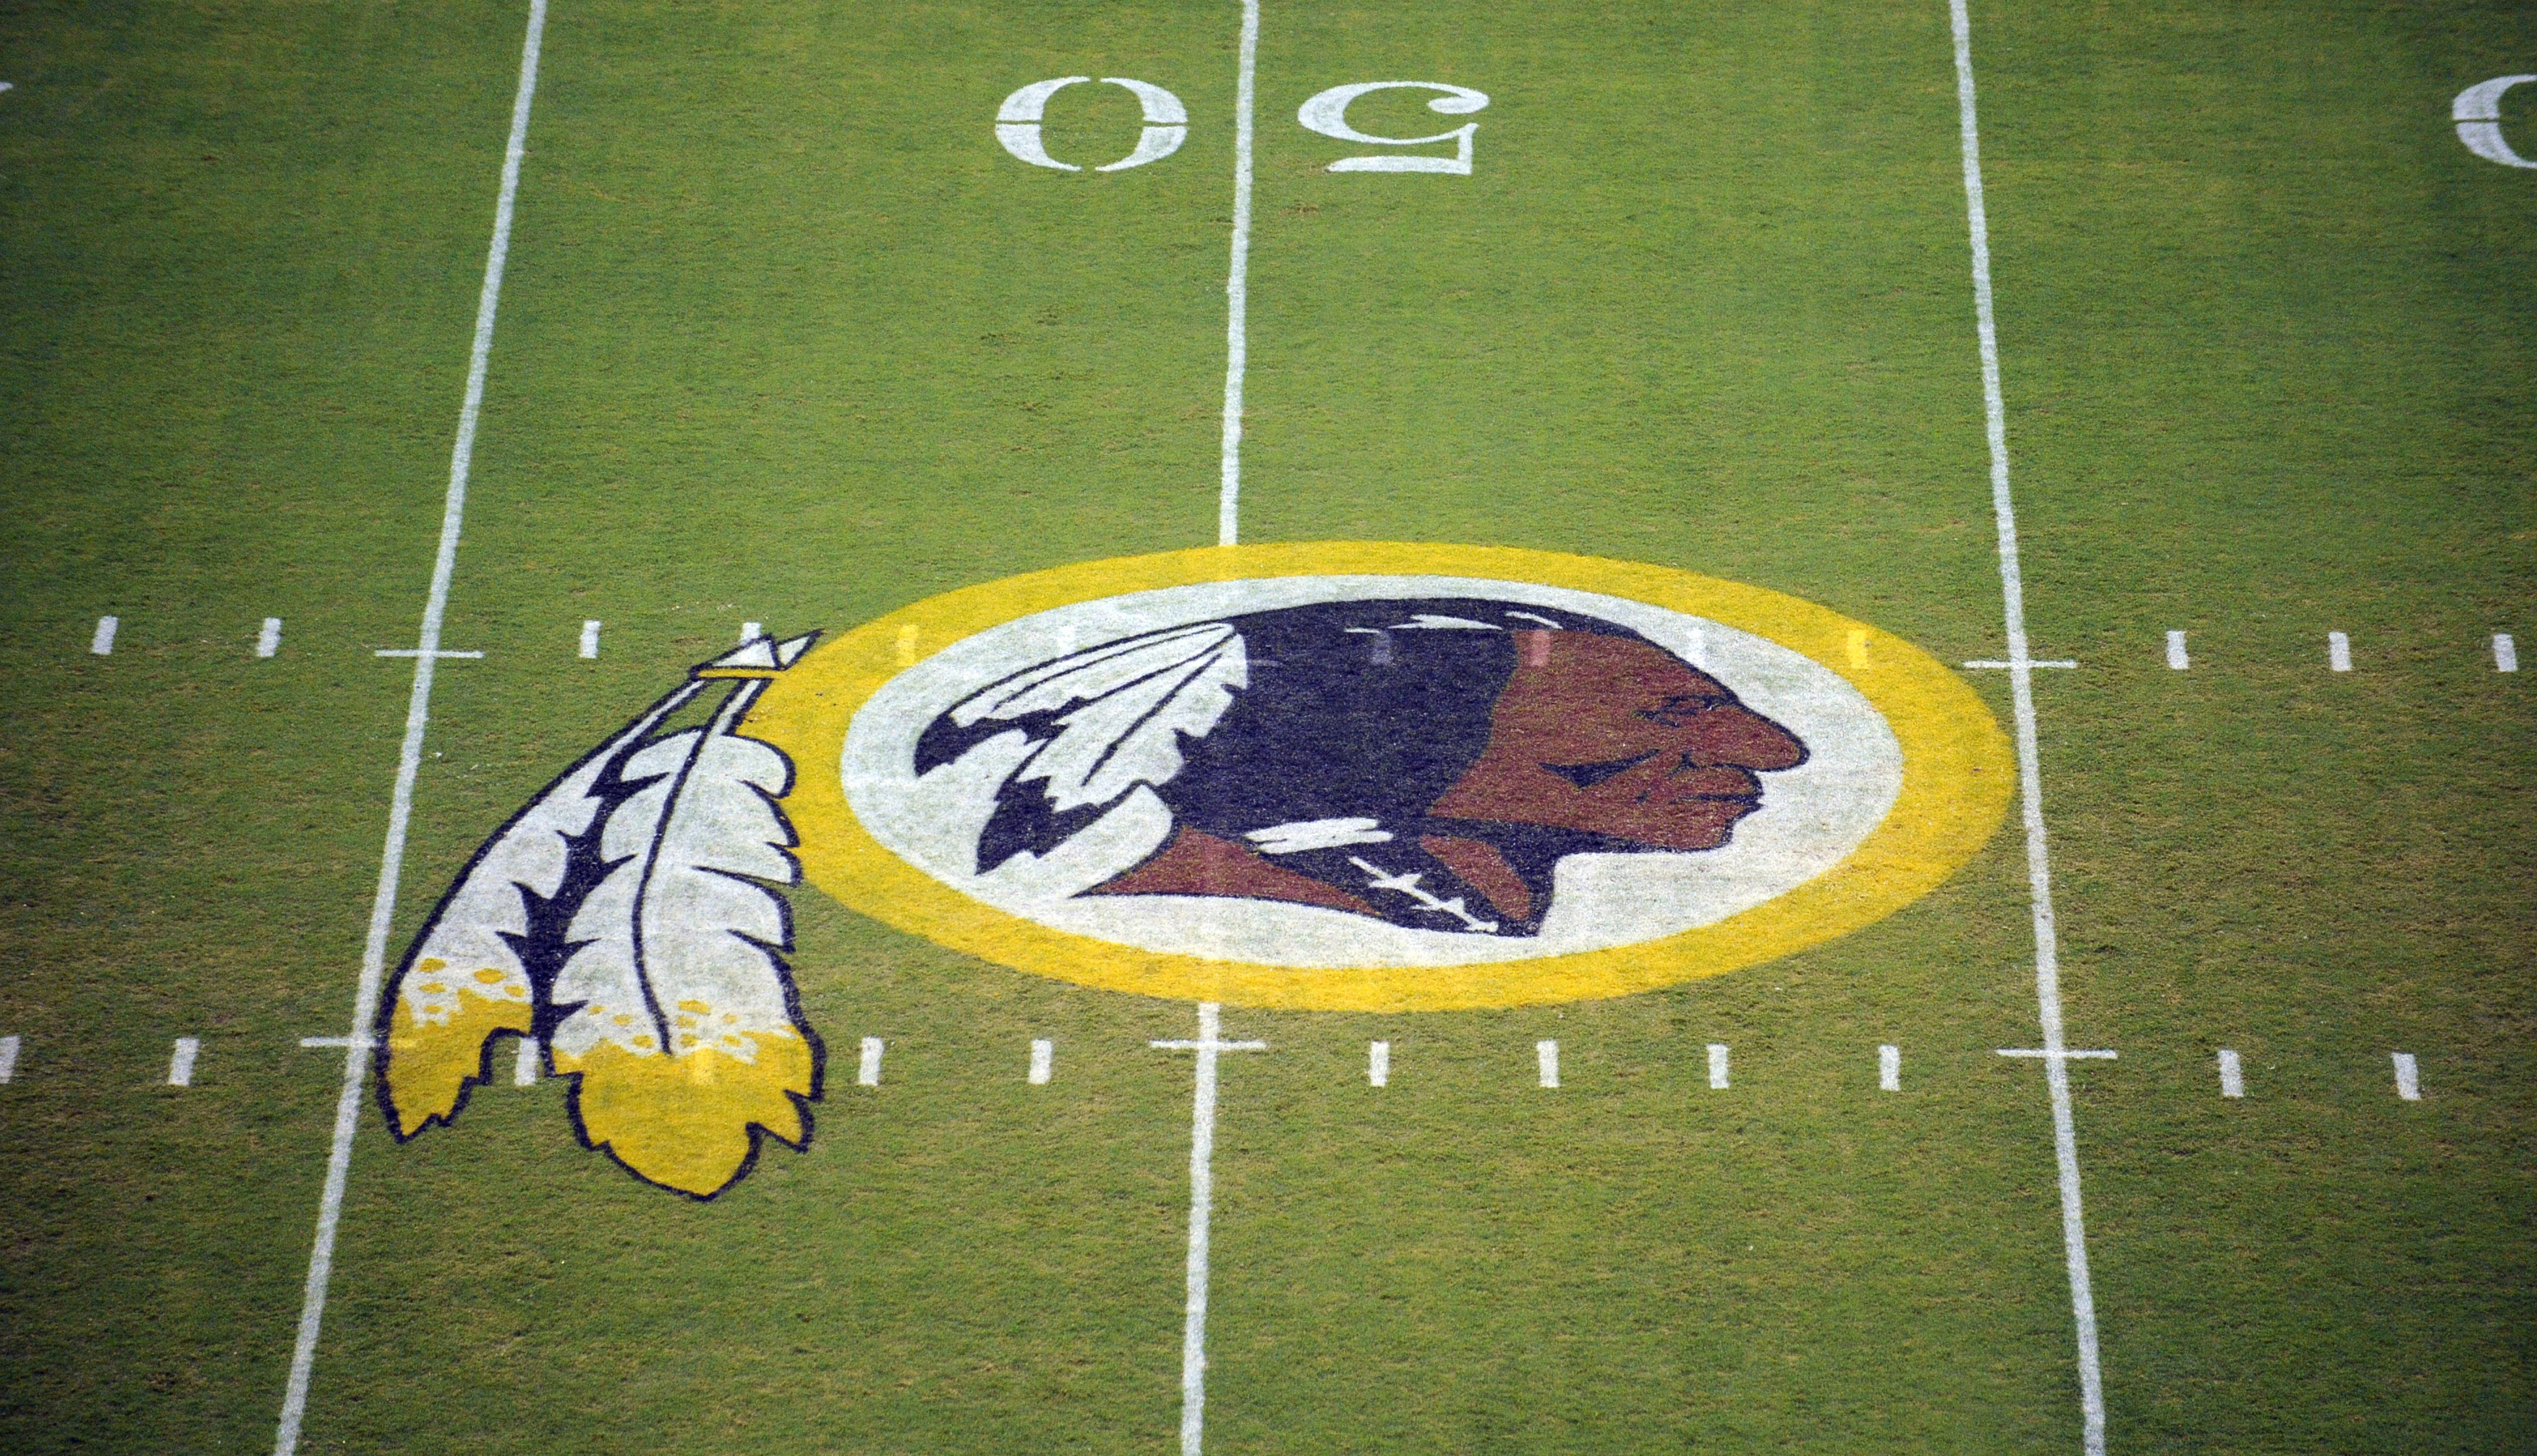 FILE - In this Aug. 28, 2009 file photo, the Washington Redskins logo is seen on the field before the start of a preseason NFL football game in Landover, Md.  A judge is hearing arguments from the Washington Redskins on June 23, 2015, that canceling the t